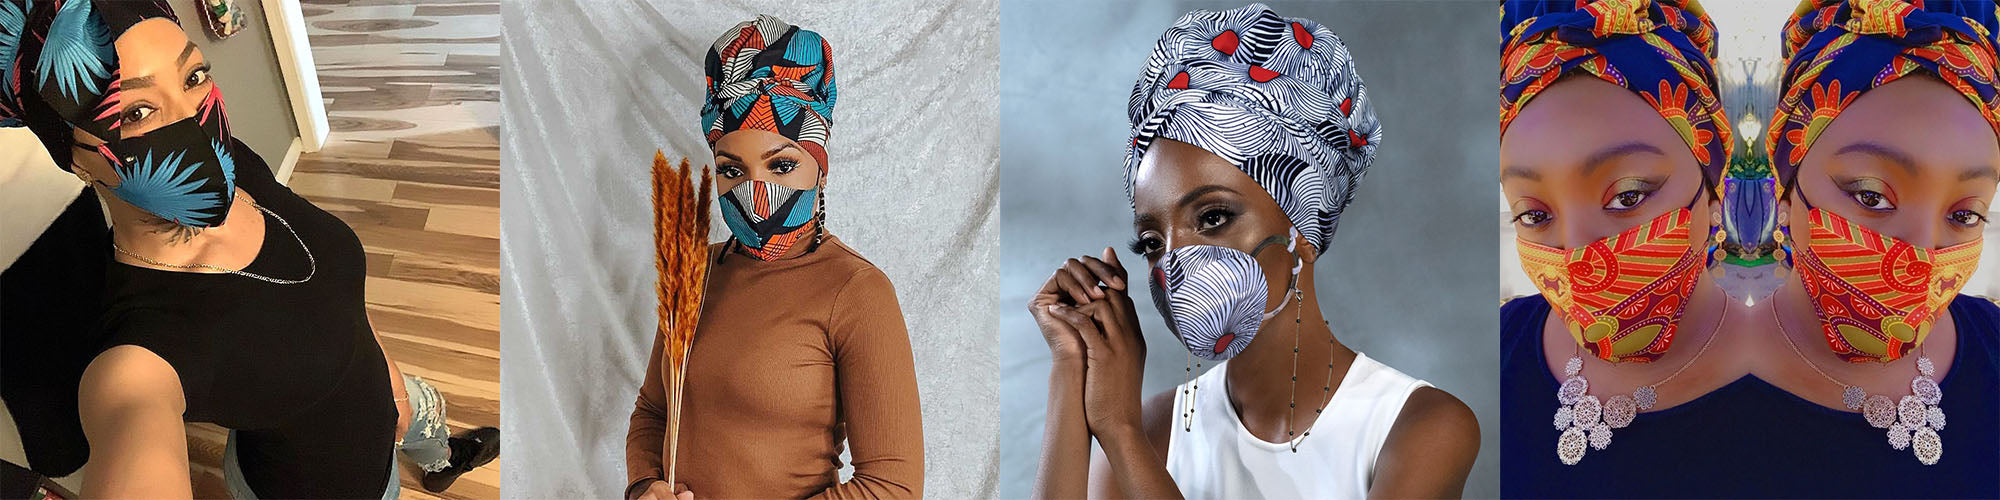 Mask with headwraps